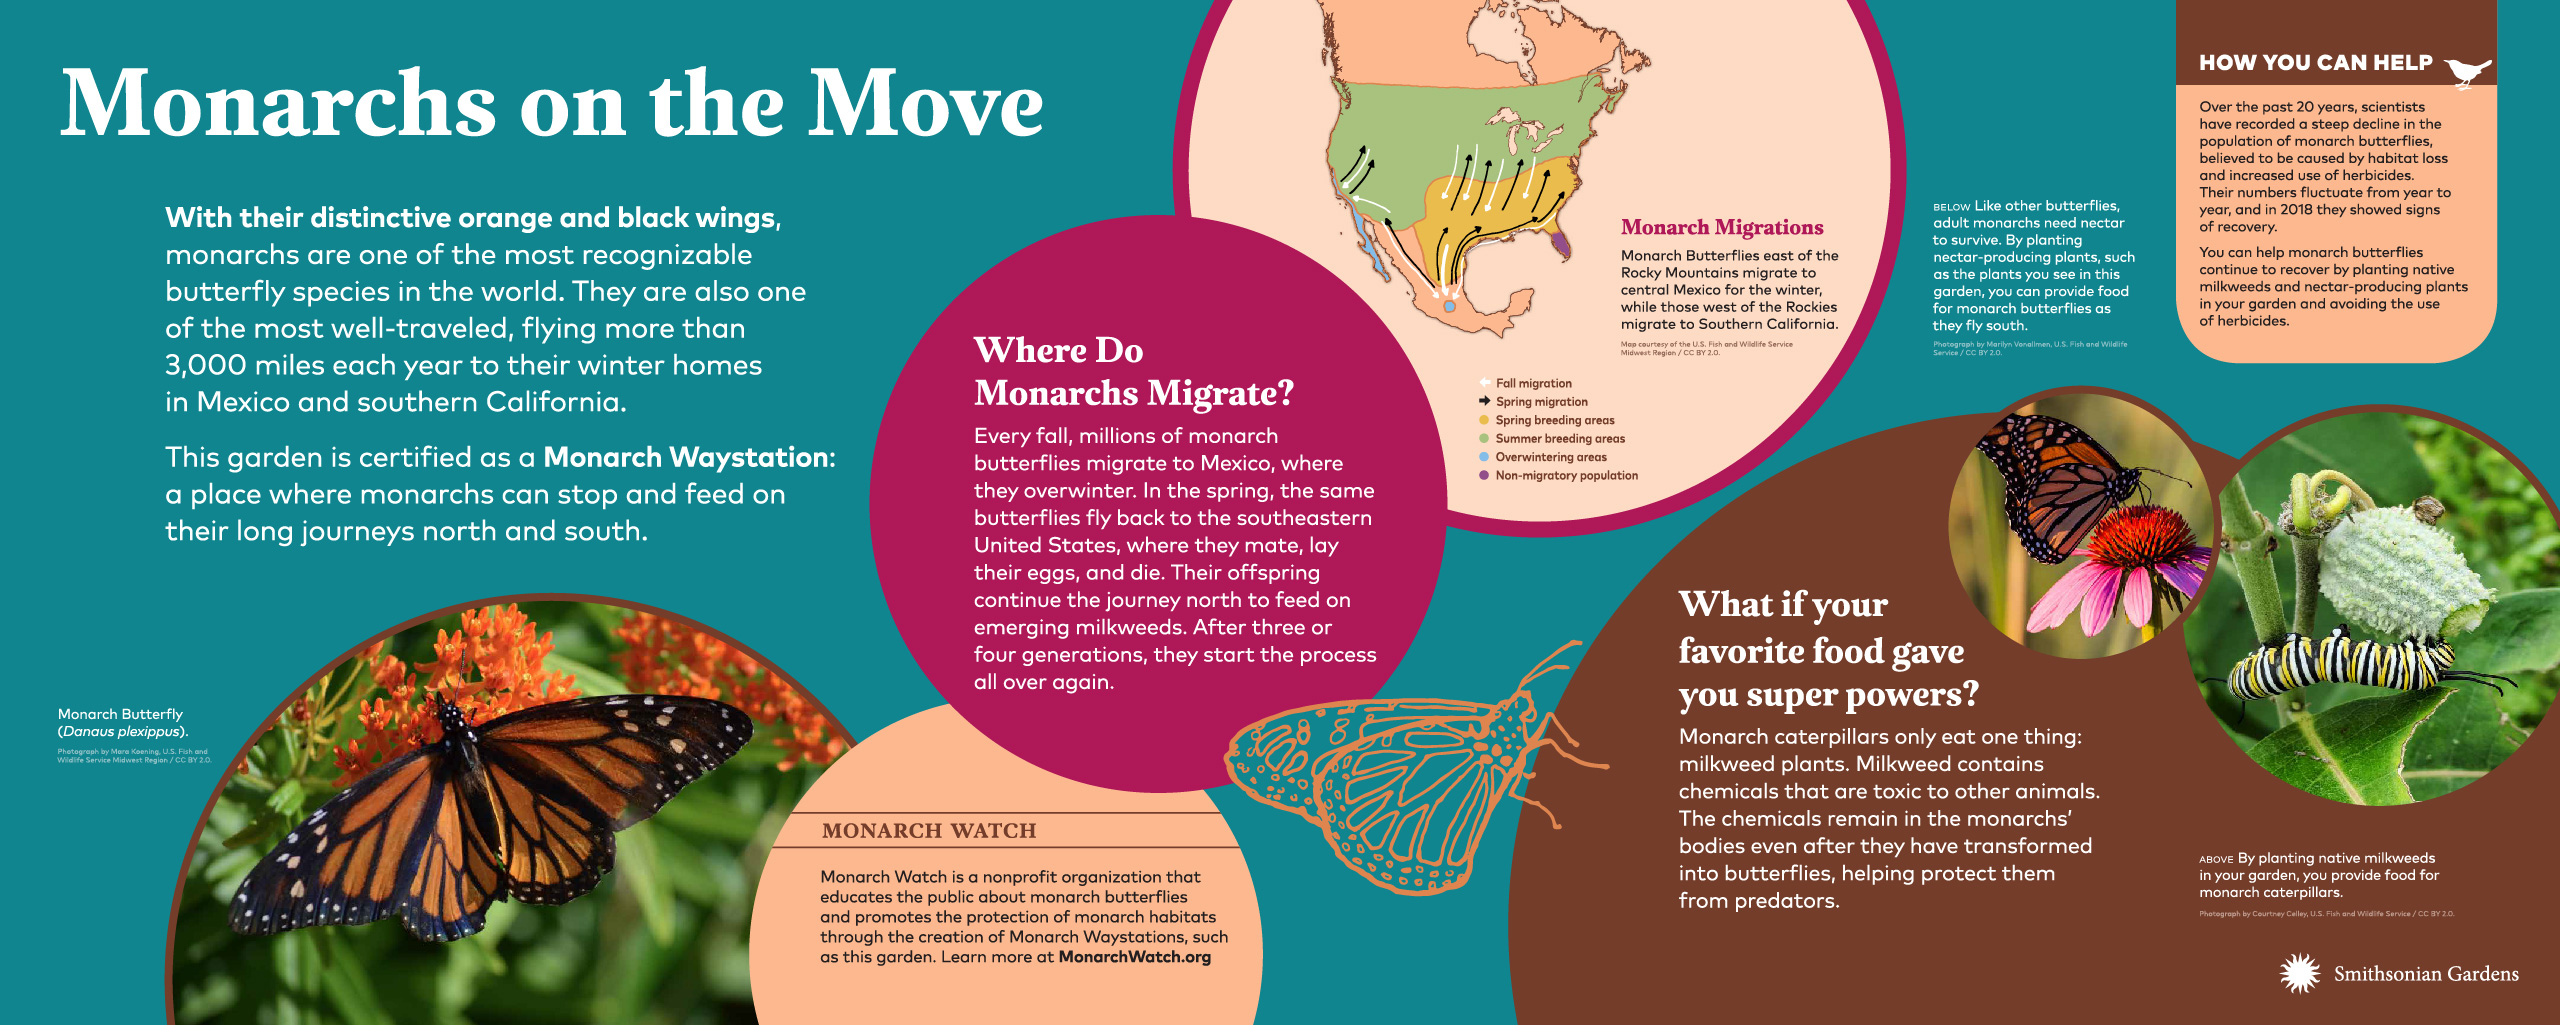 Monarchs on the Move exhibit panel